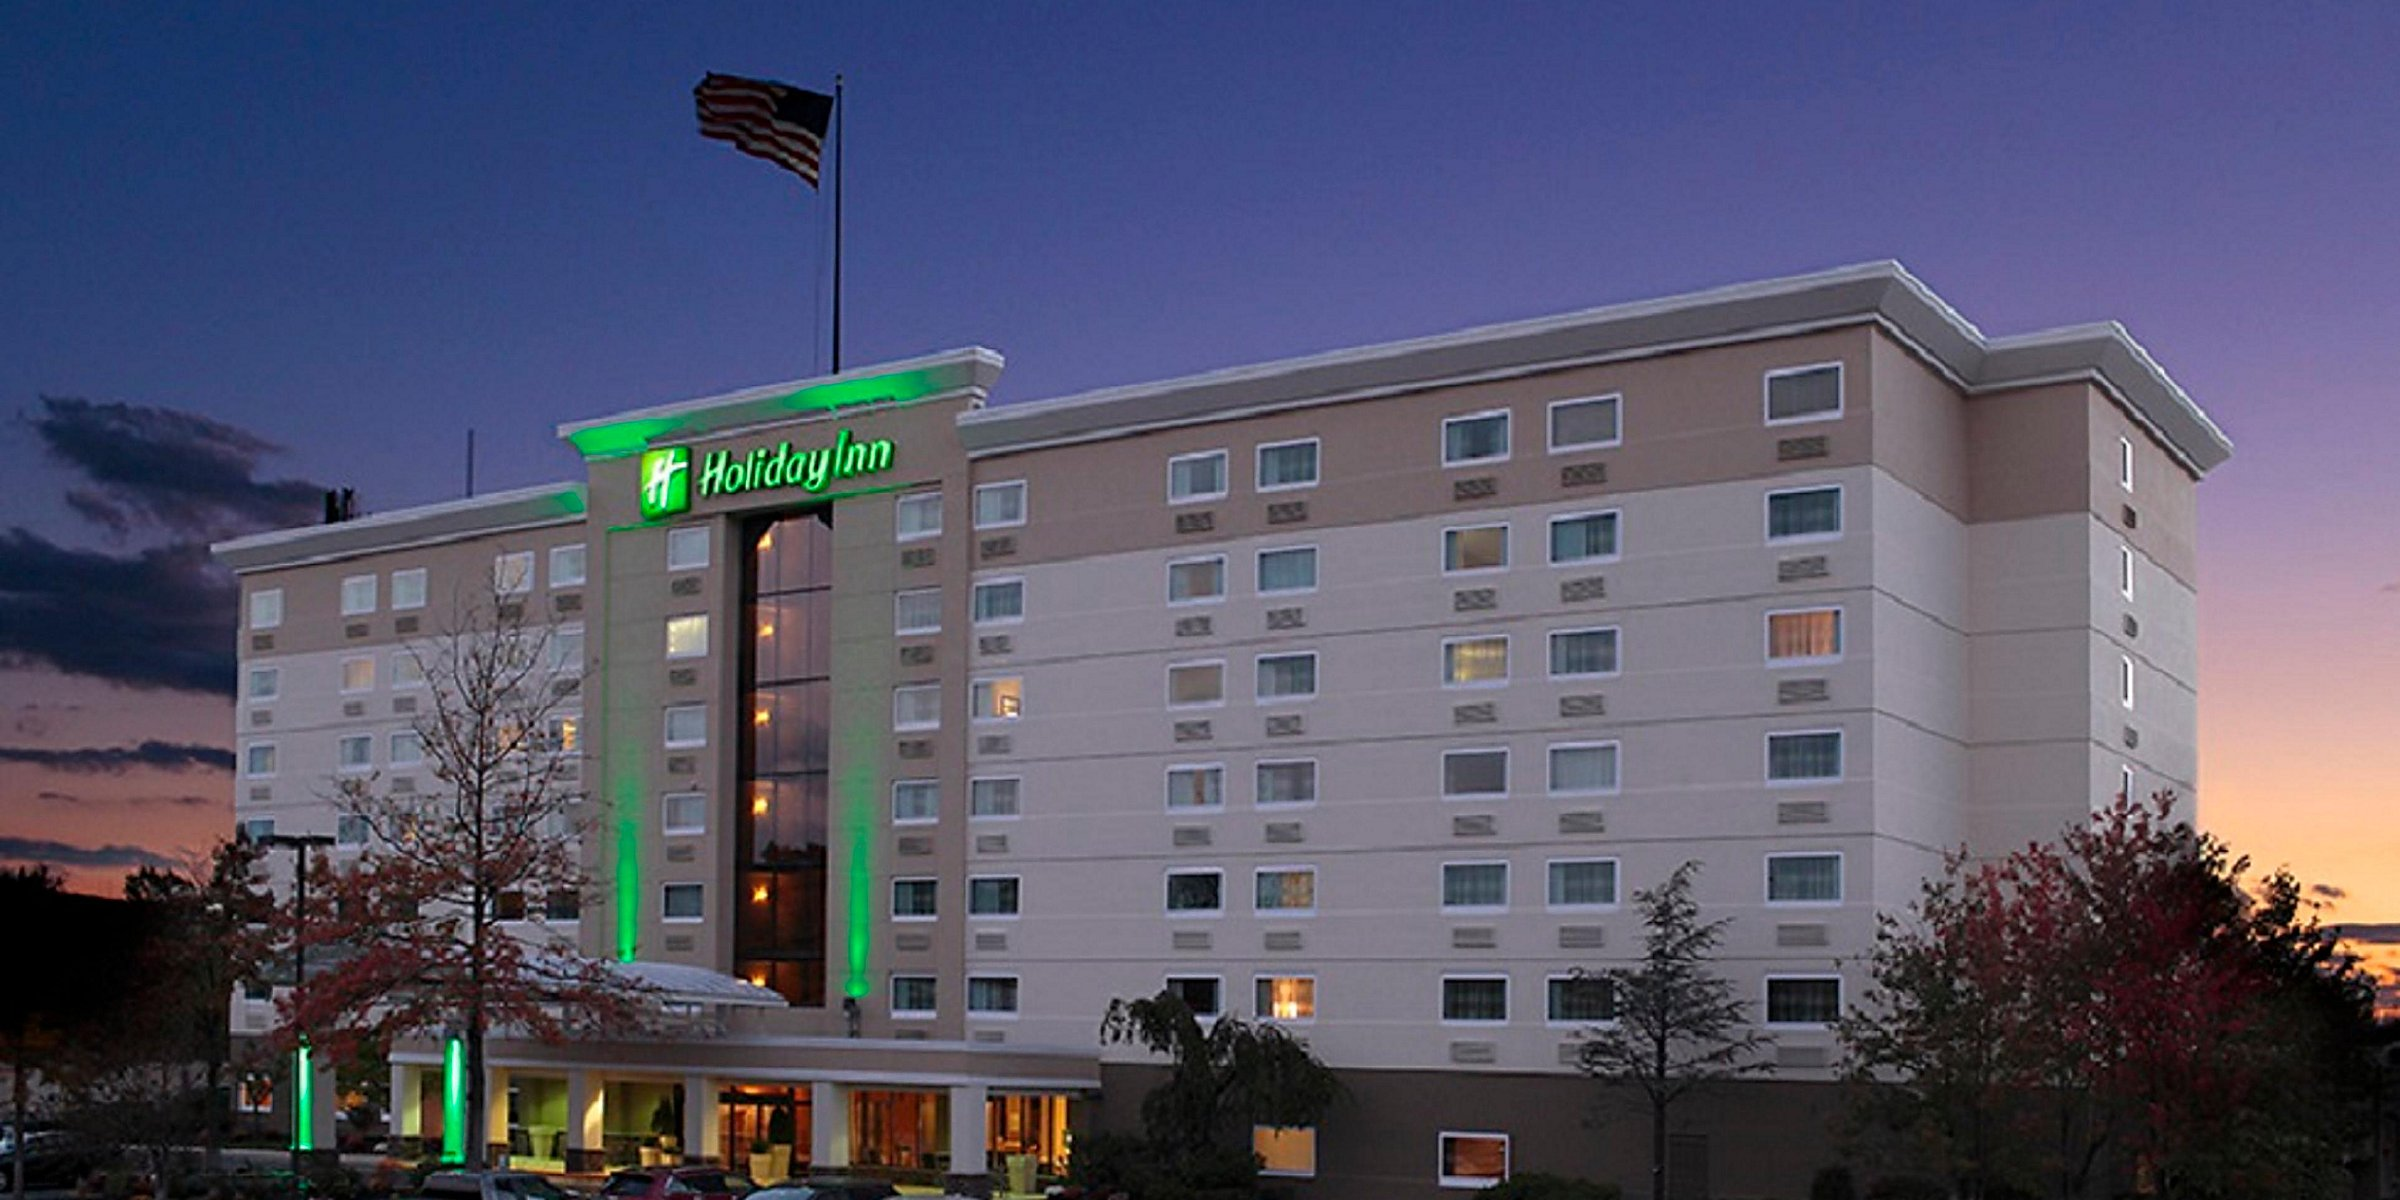 Hotel in Wilkes Barre, PA - Holiday Inn Wilkes Barre